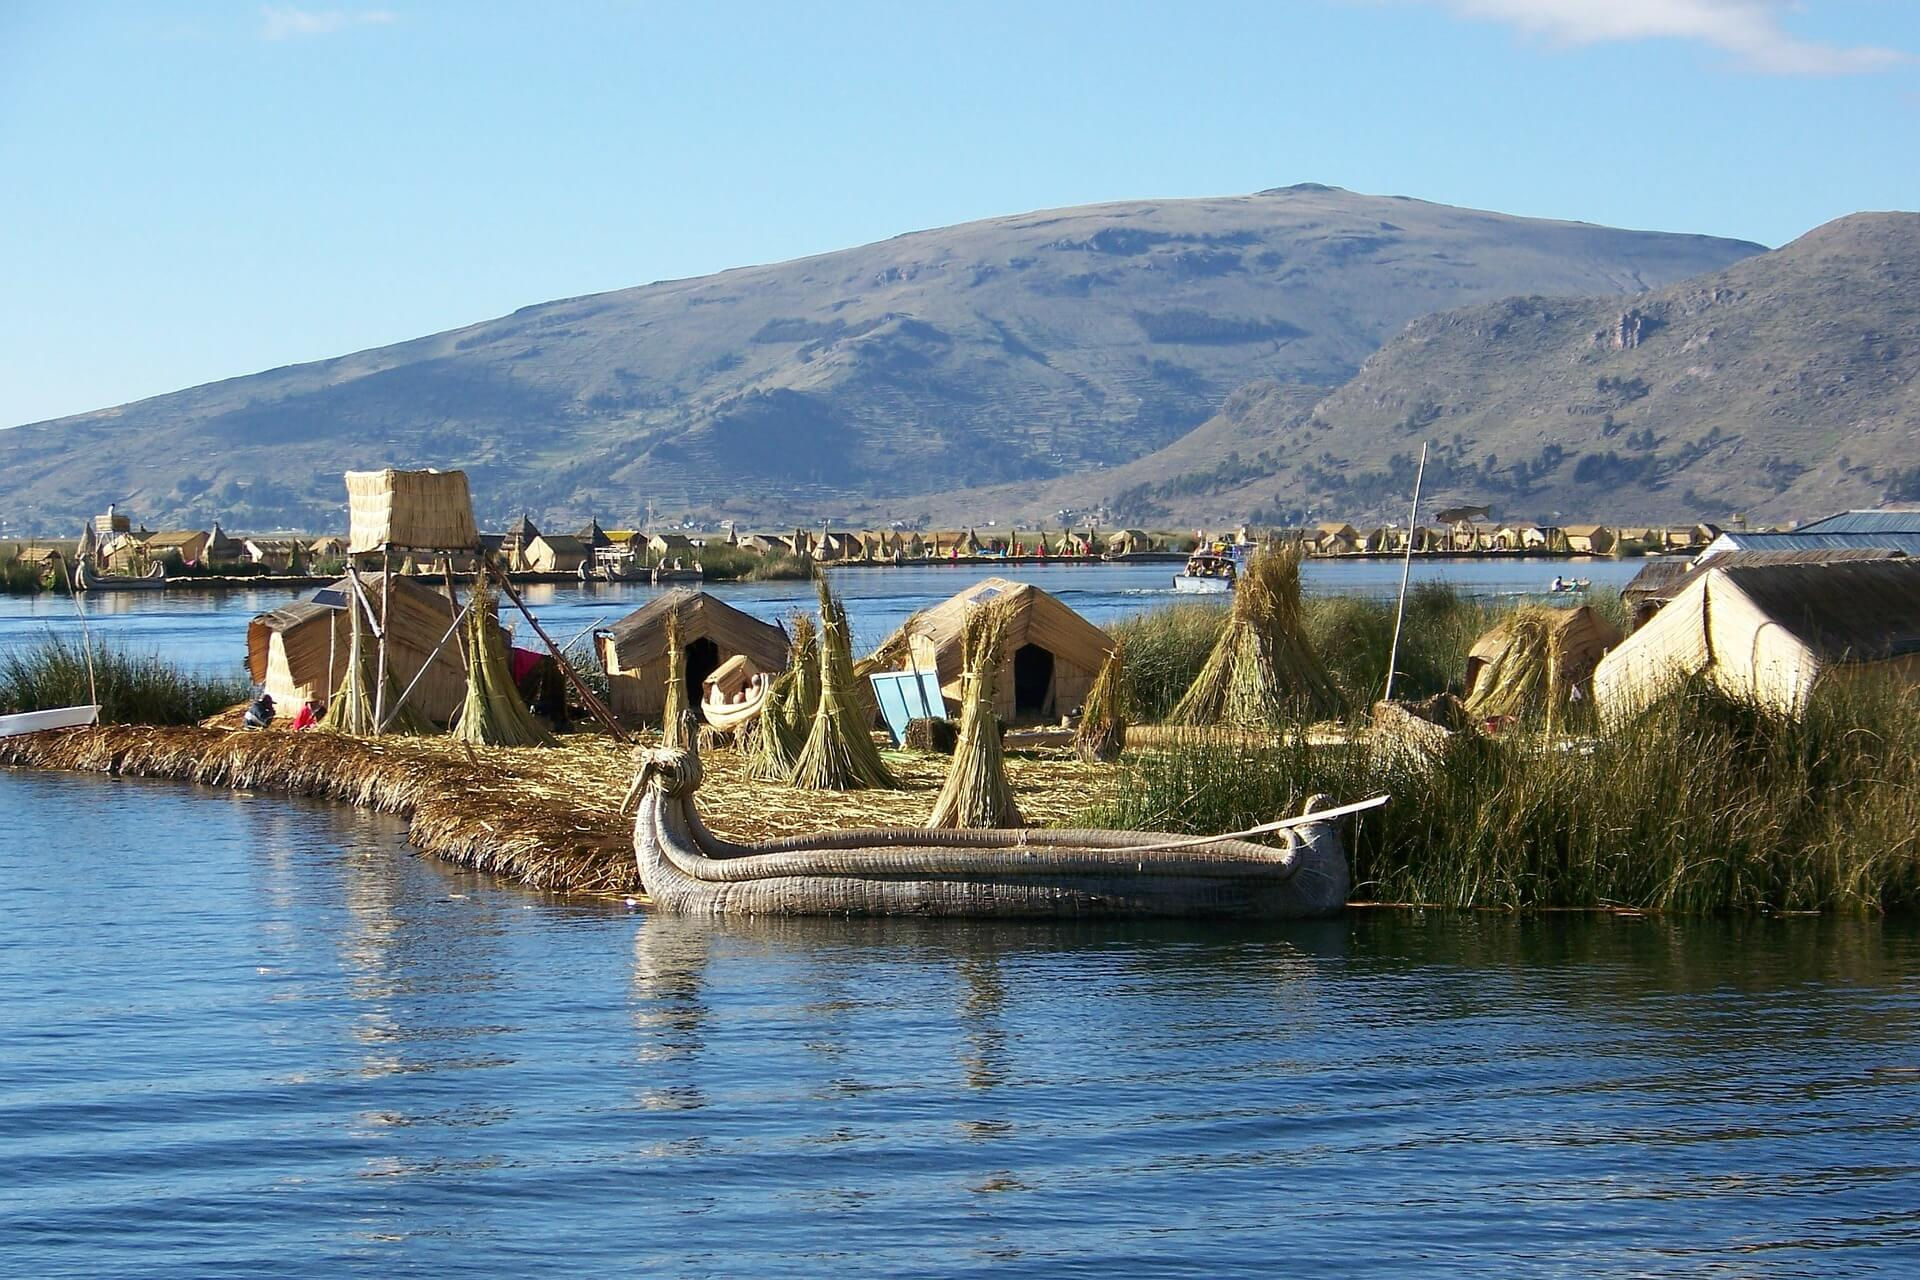 A boat floating on Lake Titicaca in Peru near hay huts